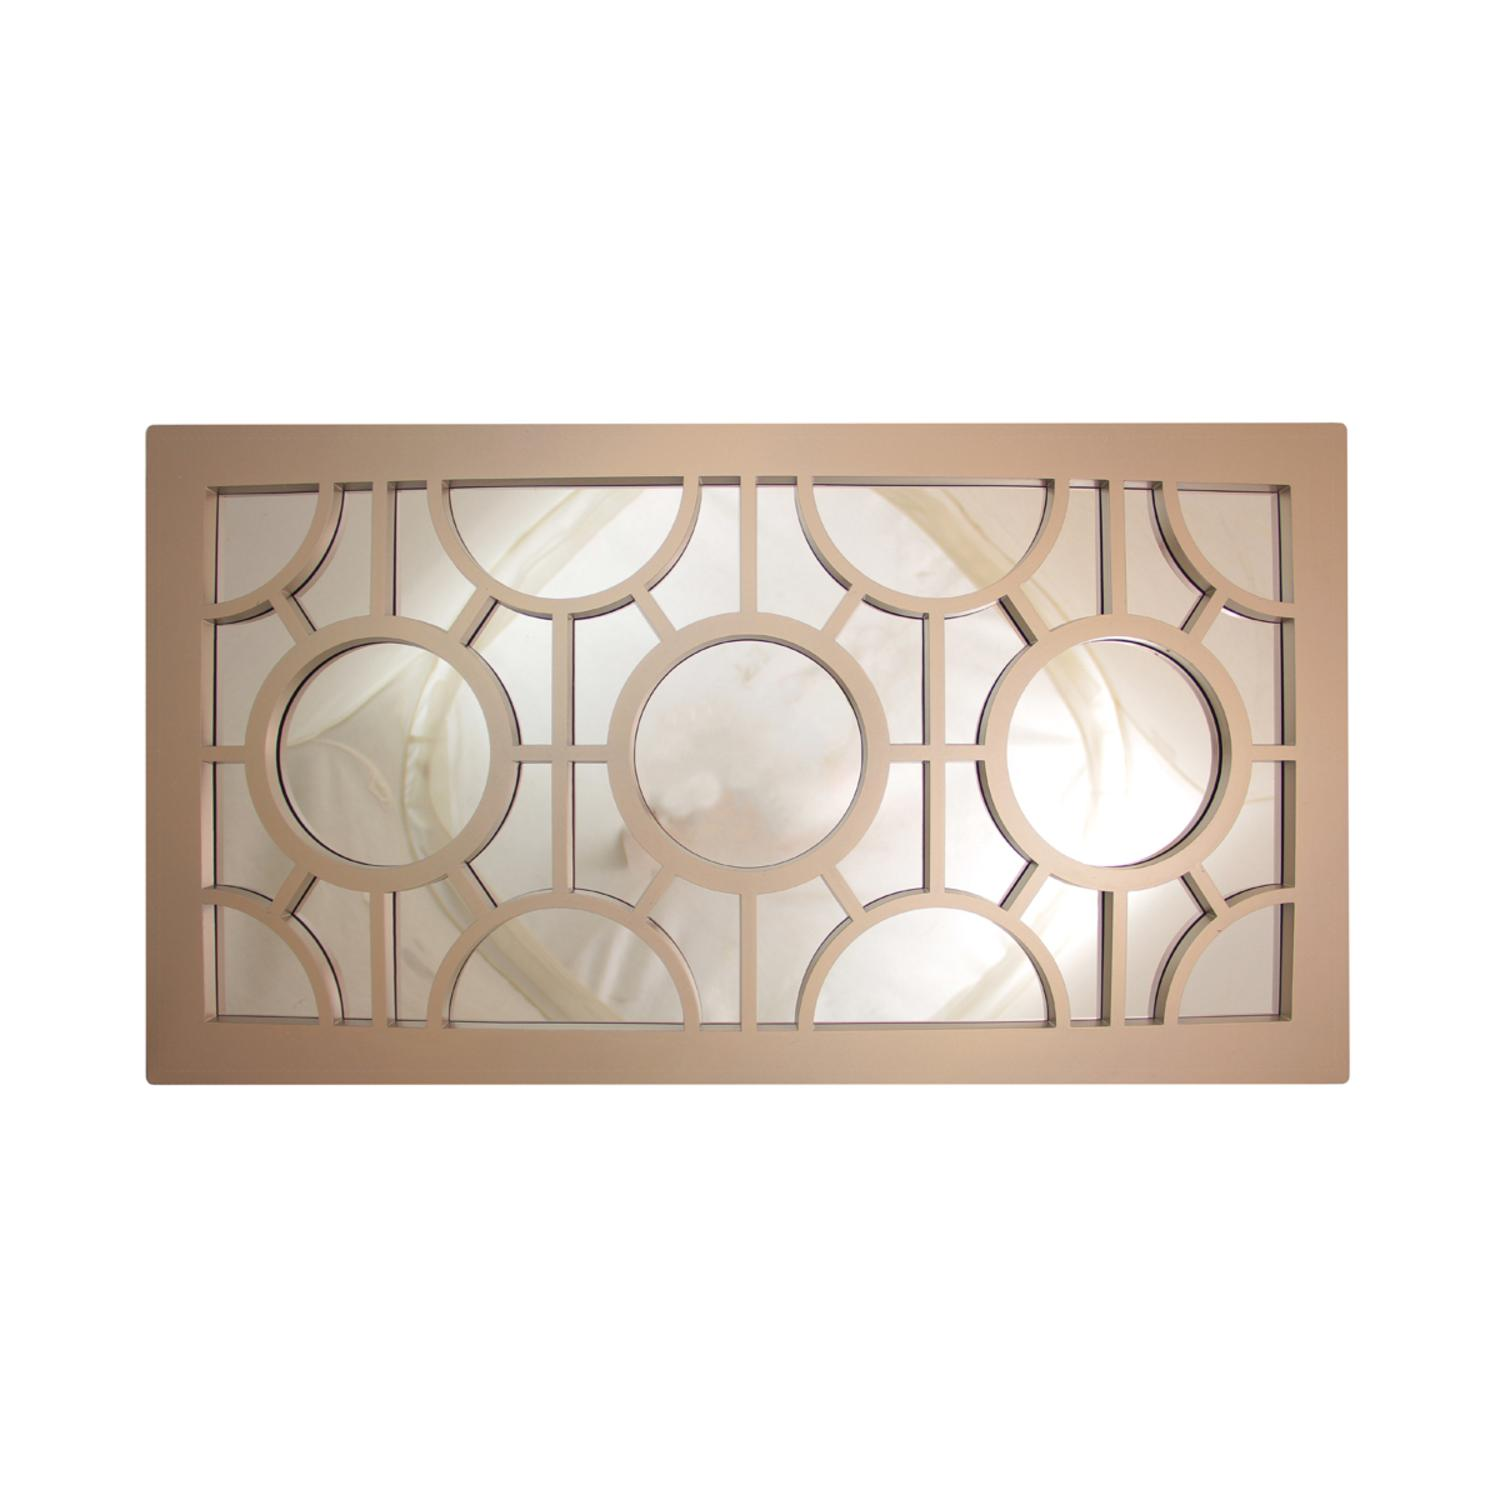 "25.5"" Oyster Gray Geometrical Circles Decorative Rectangular Wall Mirror by Northlight"